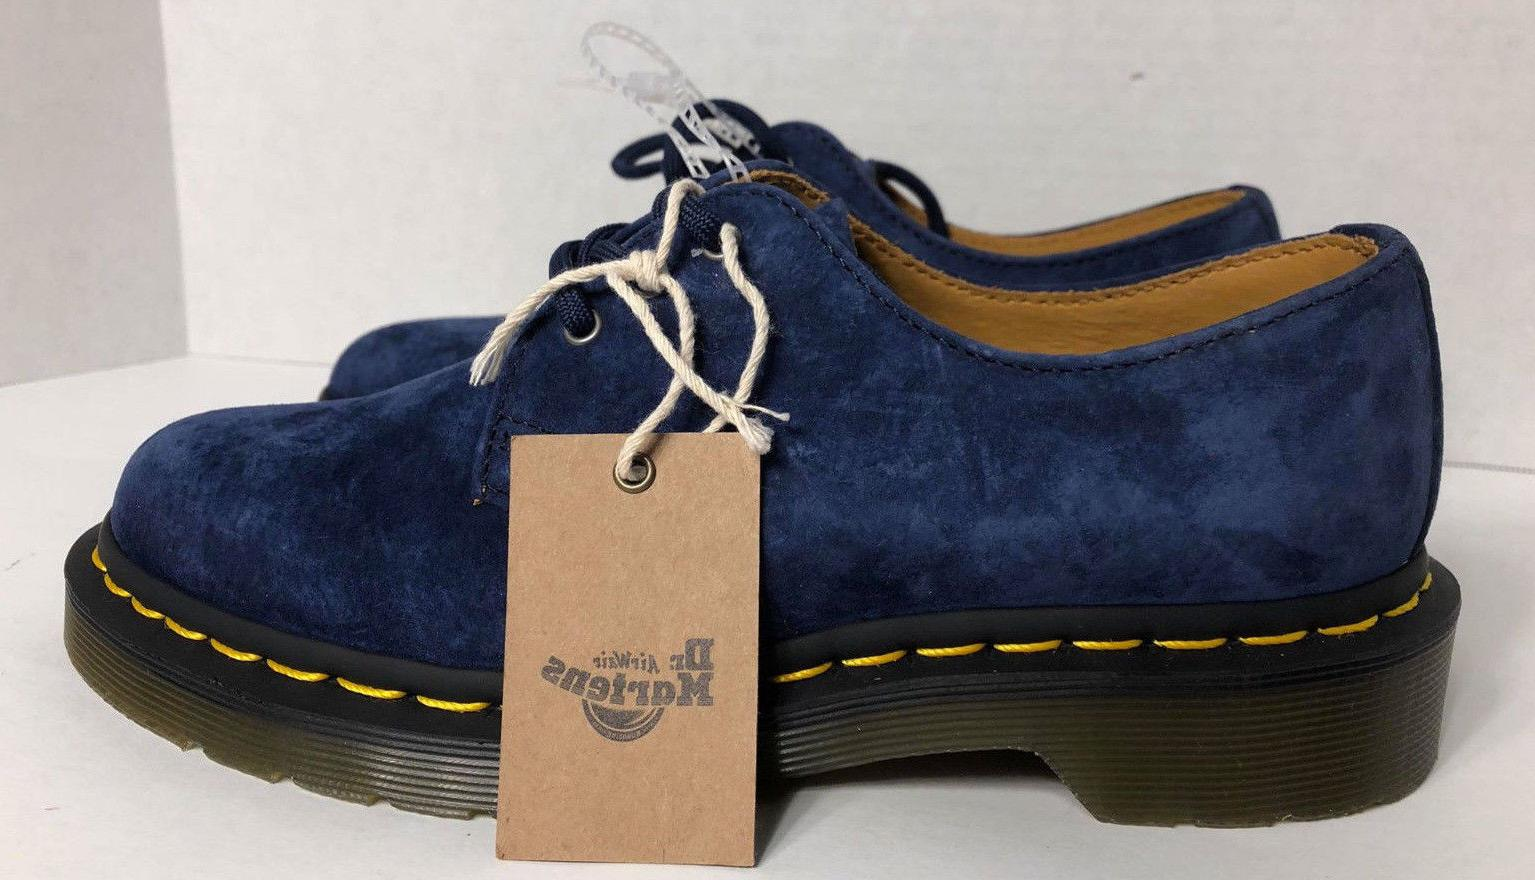 NEW Dr Martens Womens Size 4 Oxford Shoes